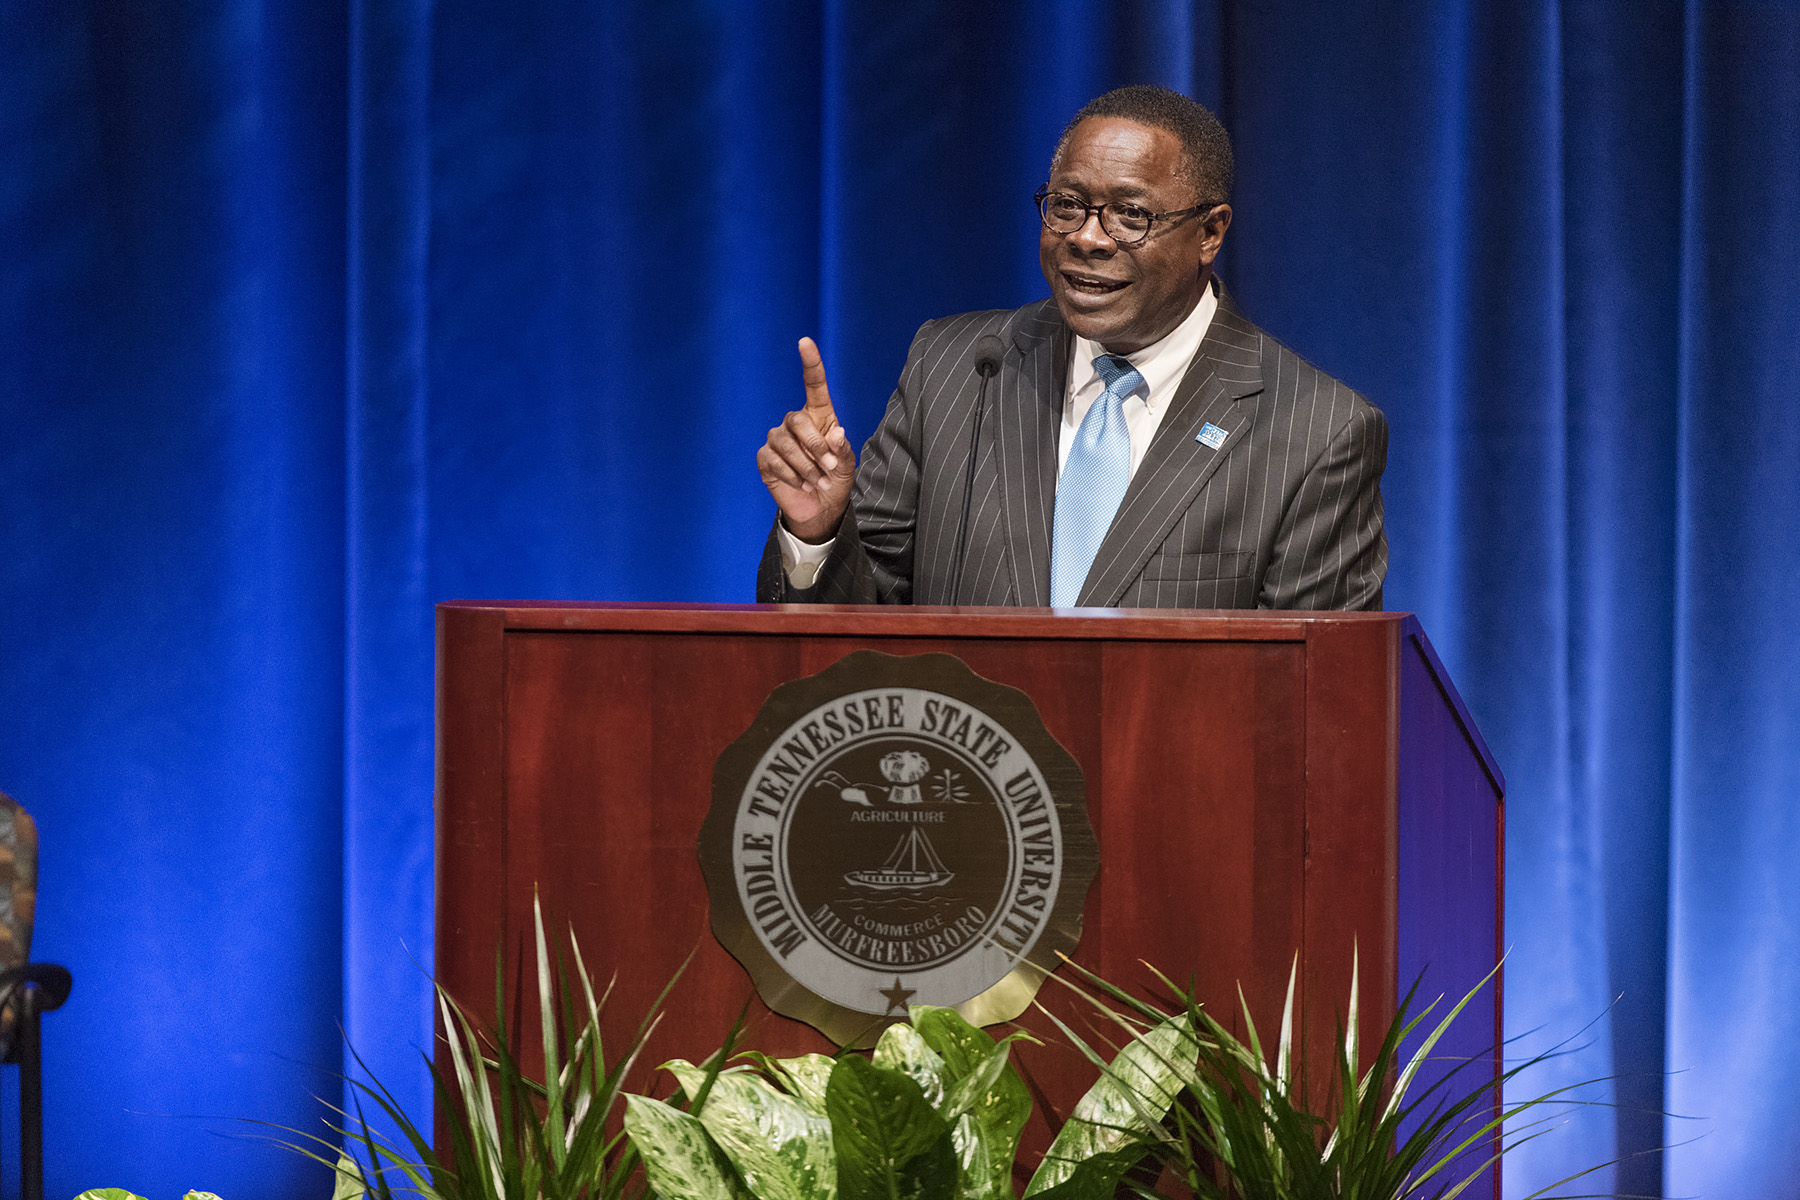 MTSU president highlights academic progress, fiscal challenges ahead at faculty meeting